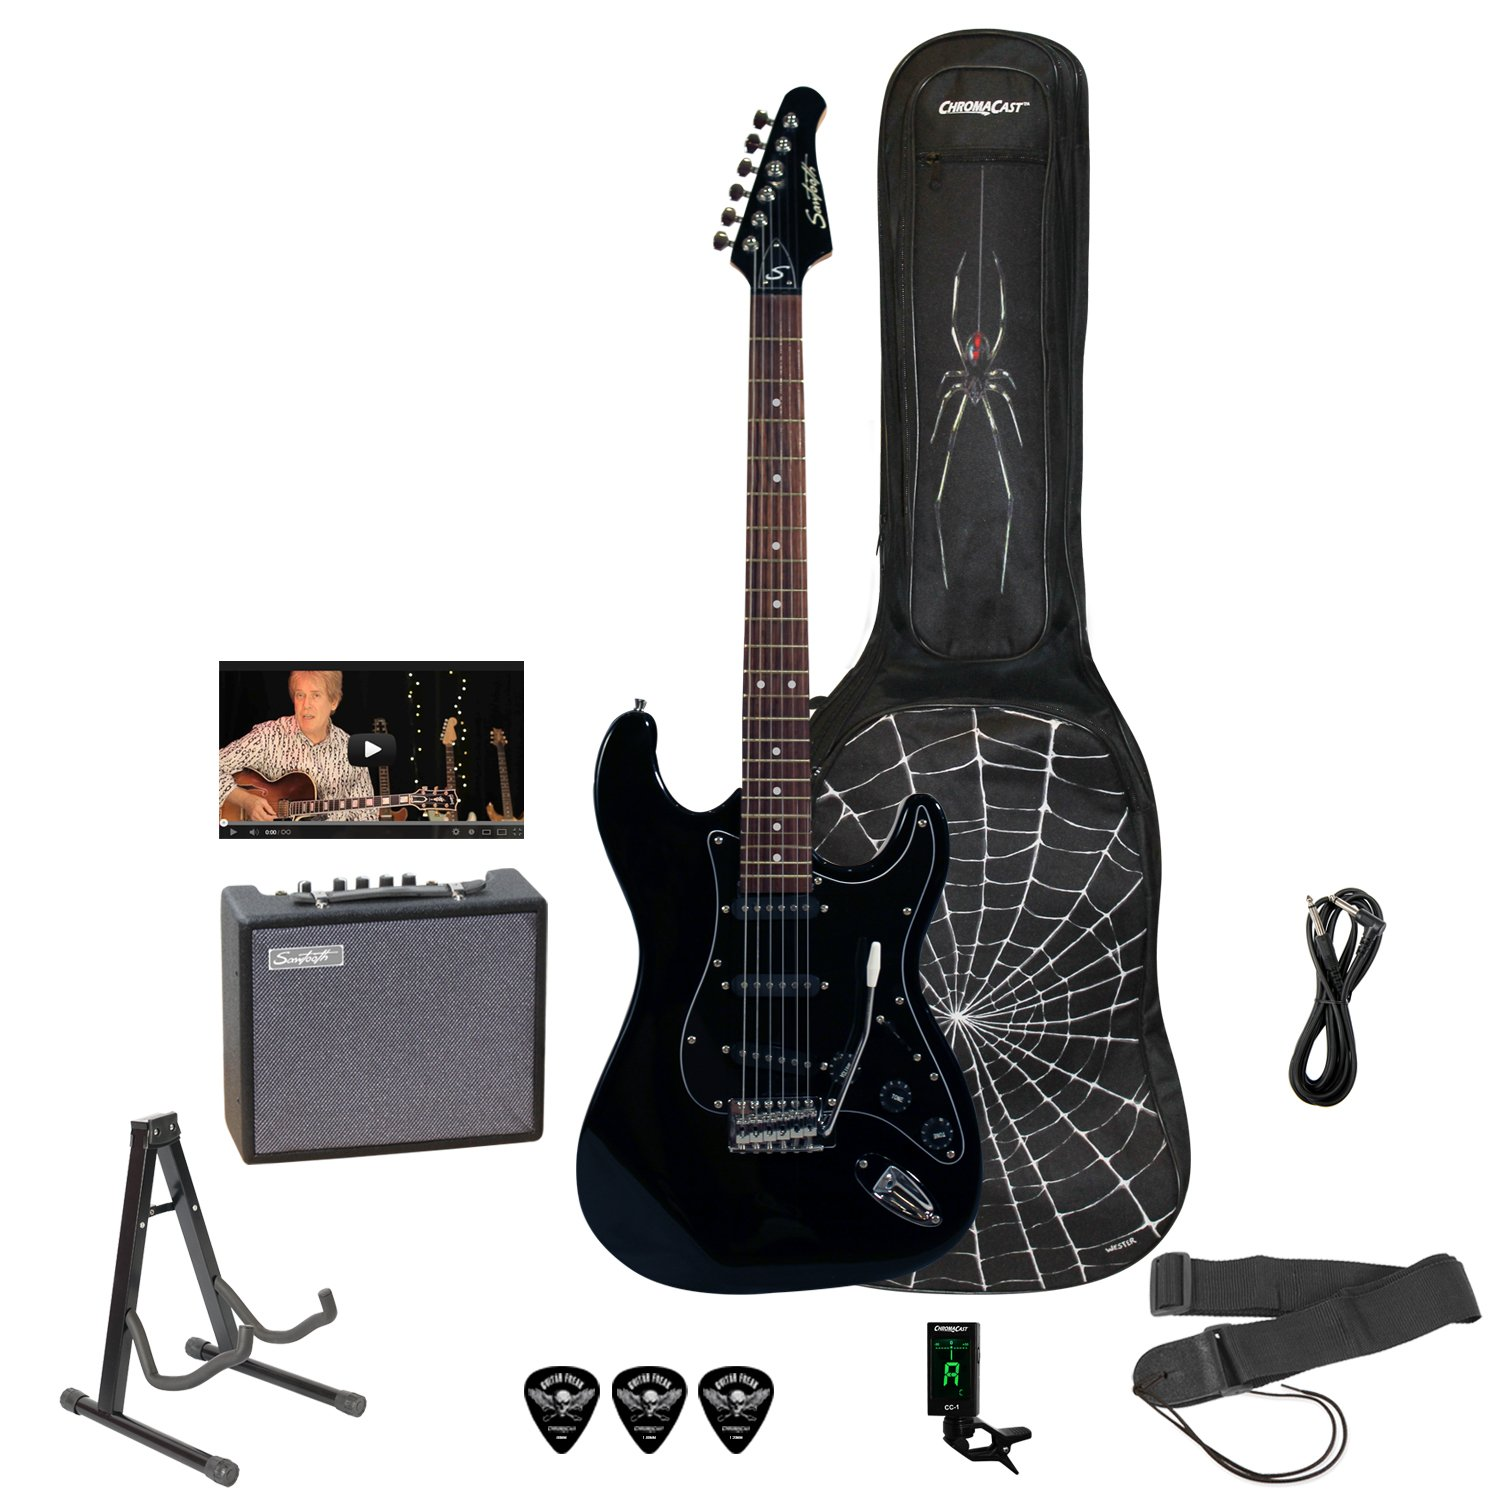 Sawtooth St Es Spider Kit3 Bkb Electric Guitar Rockin Plans Further Gibson 355 2016 Explorer Wiring Beginners Pack With Black Pickguard Musical Instruments